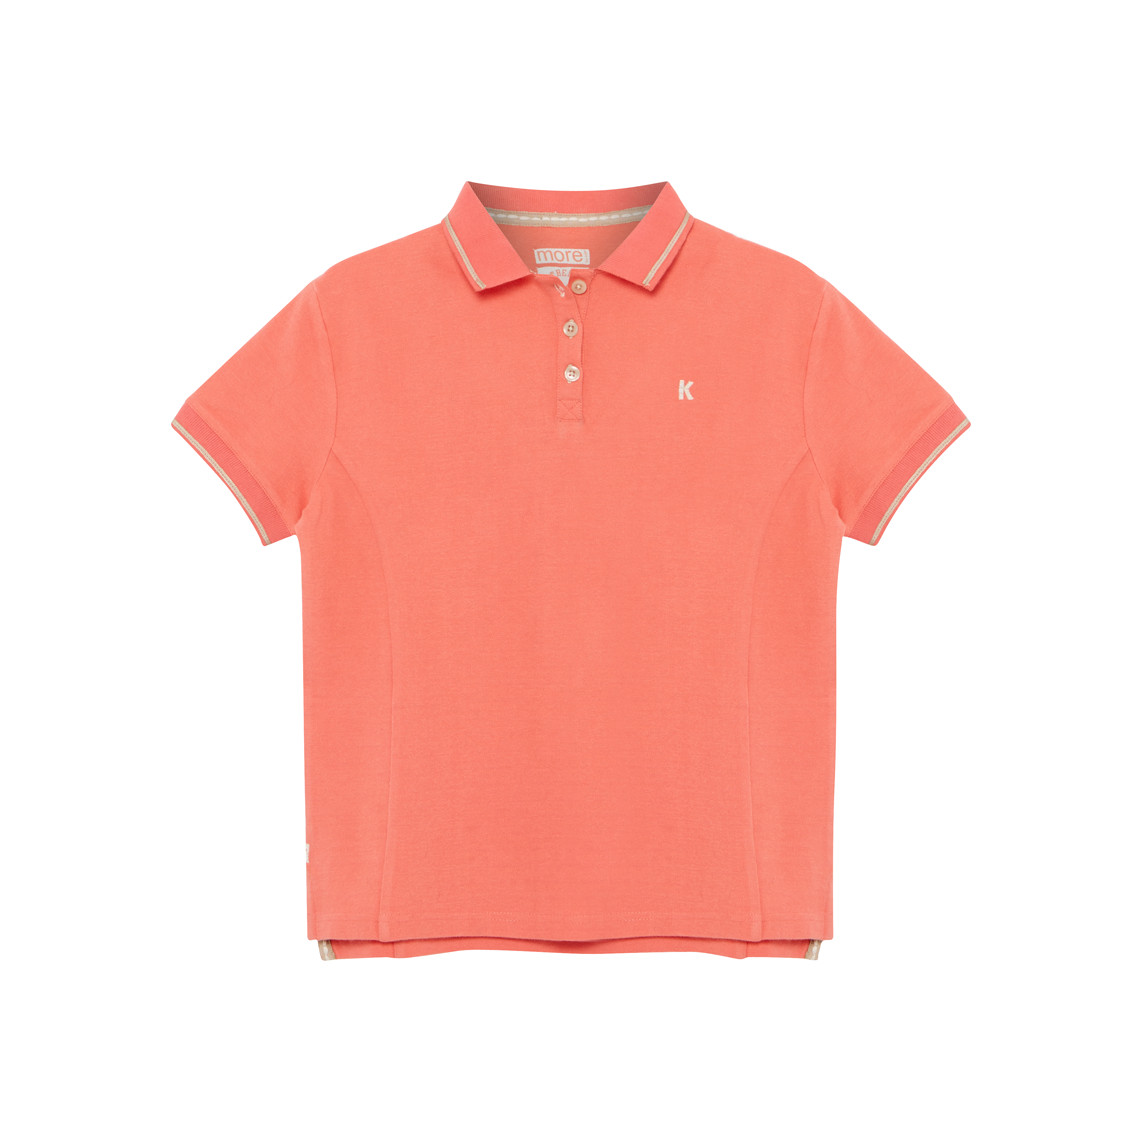 Geranium plus size polo shirt for girls generous fit 28 for Polo shirt girl addiction